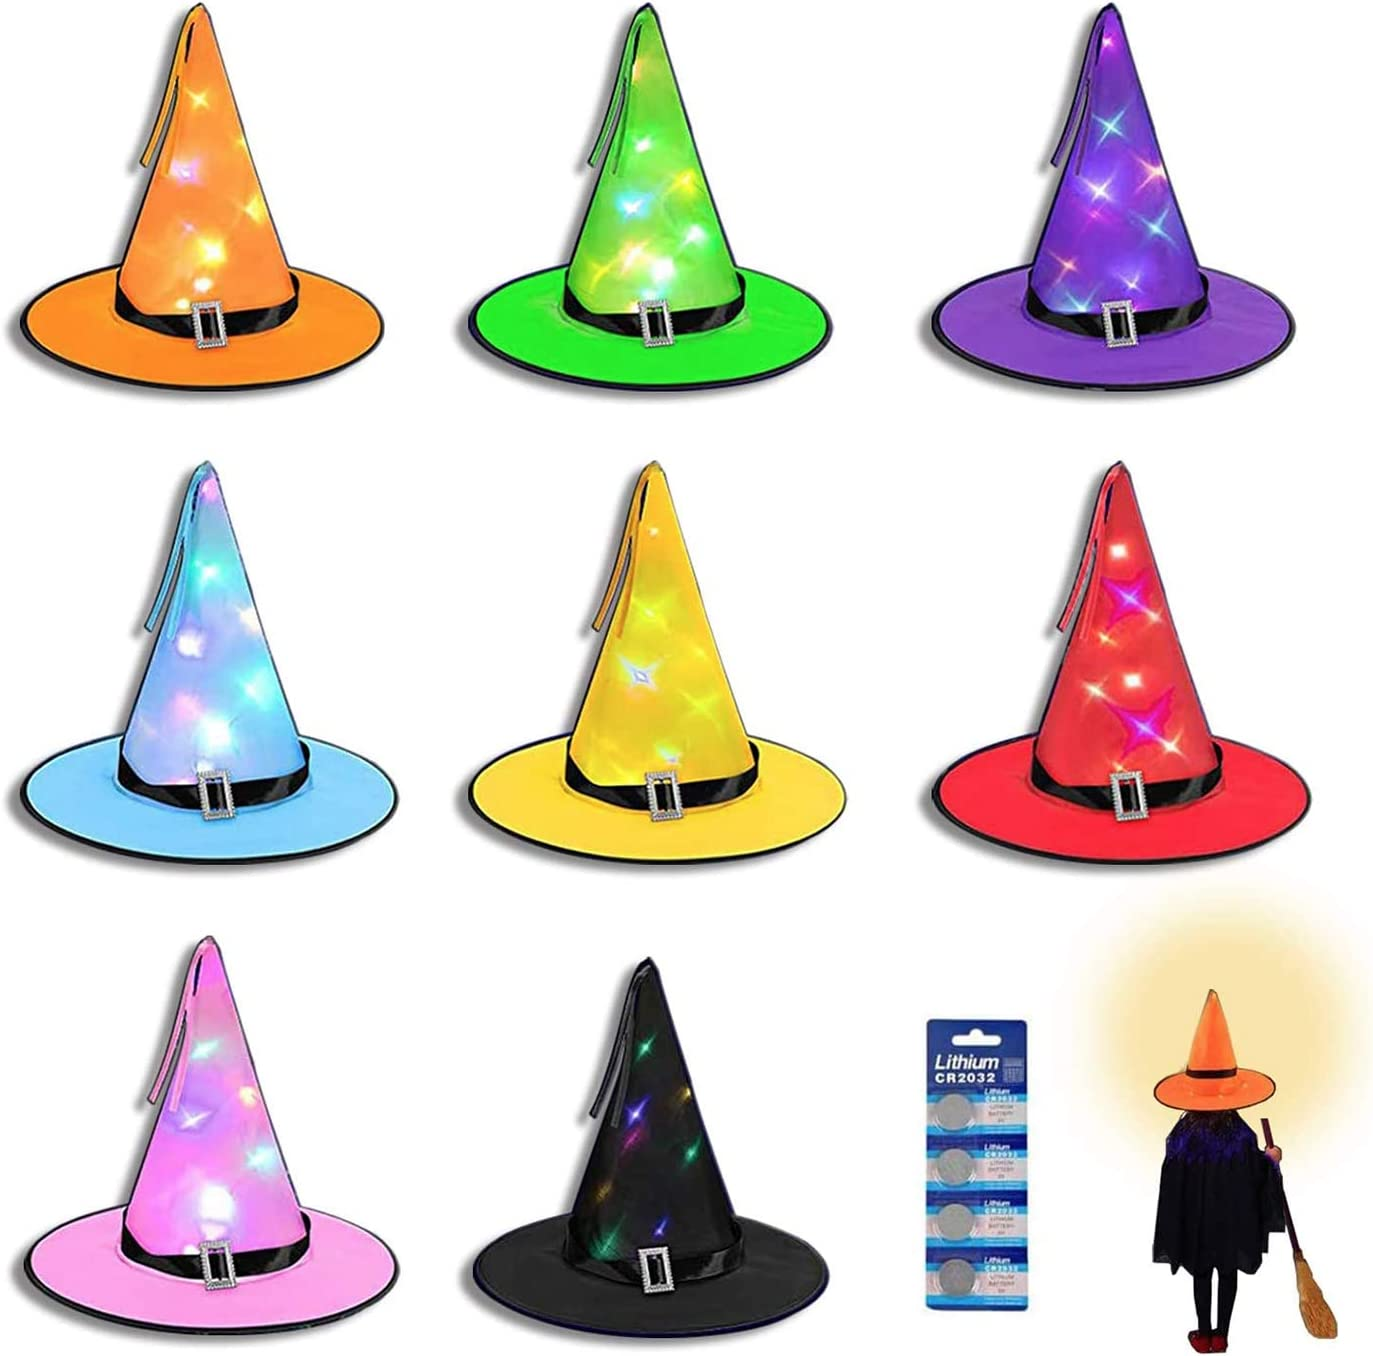 LED Witch Hat Decorations Halloween - 8 Pack Hanging Light Up Glowing Witches Hats Decorating for Outdoor,Indoor, Yard, Tree